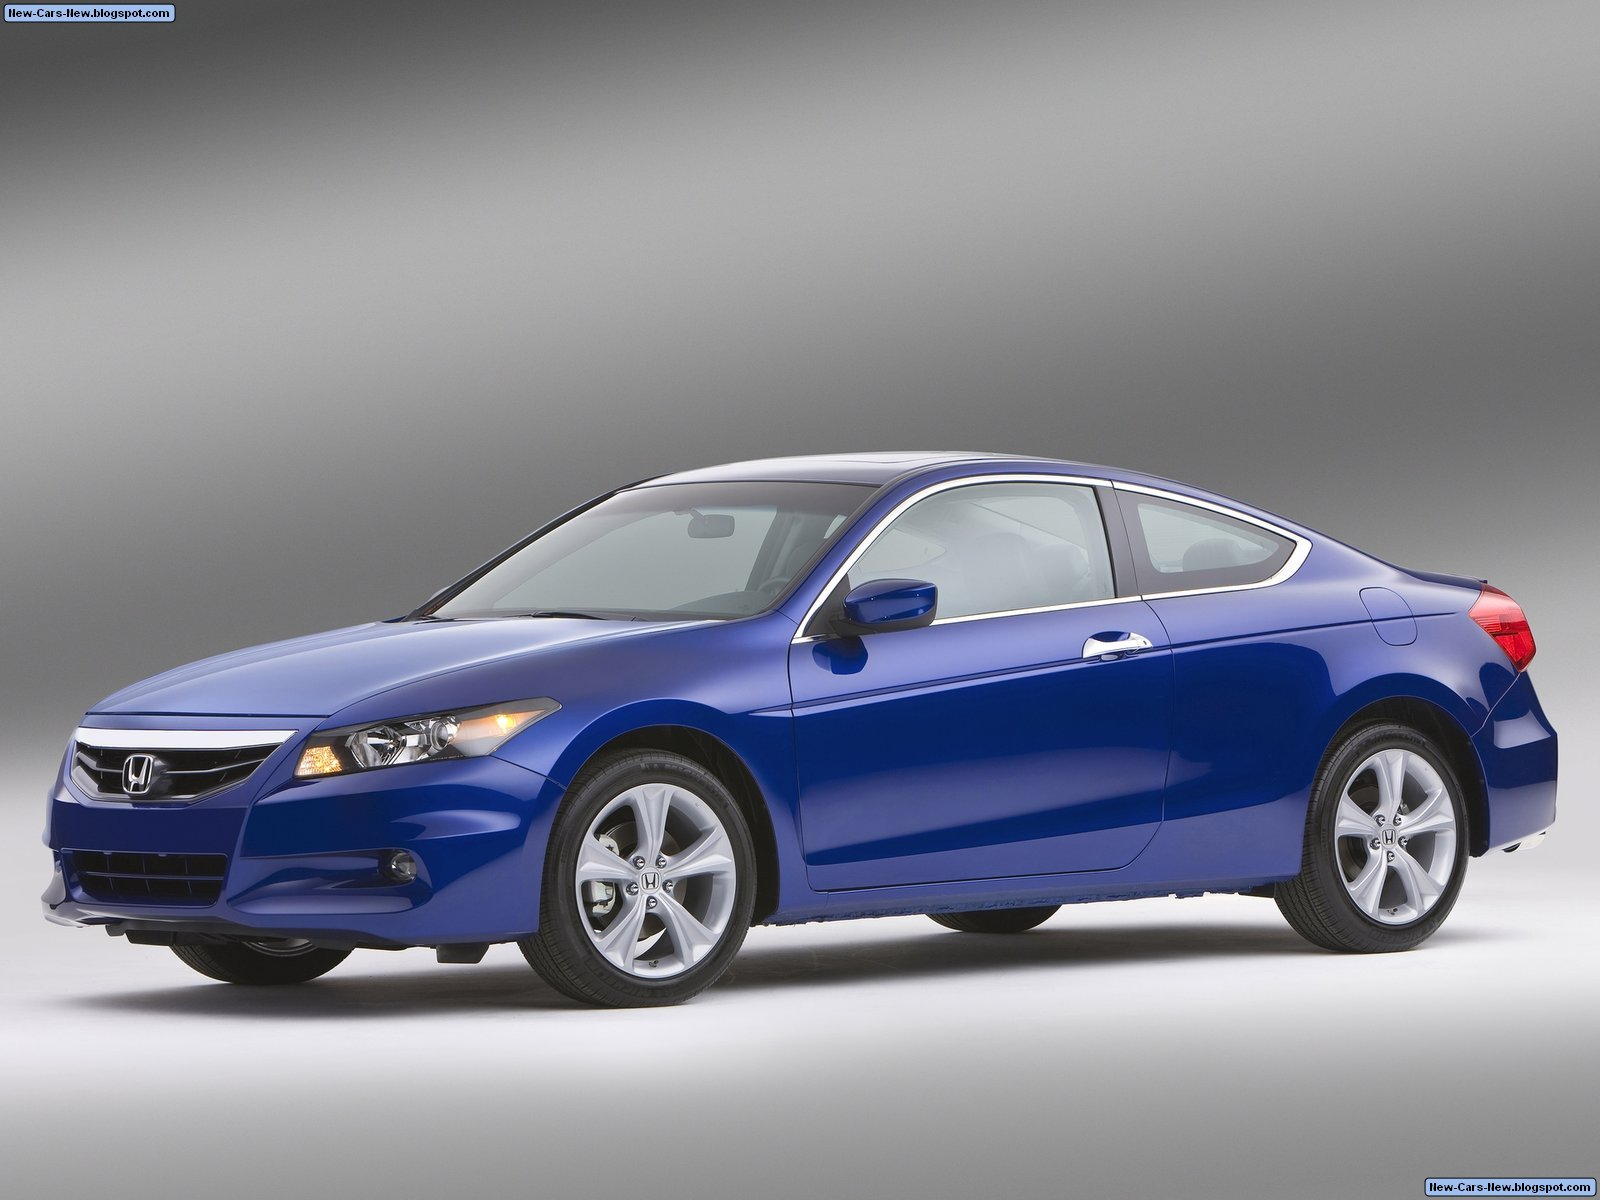 A Honda Accord coupe?